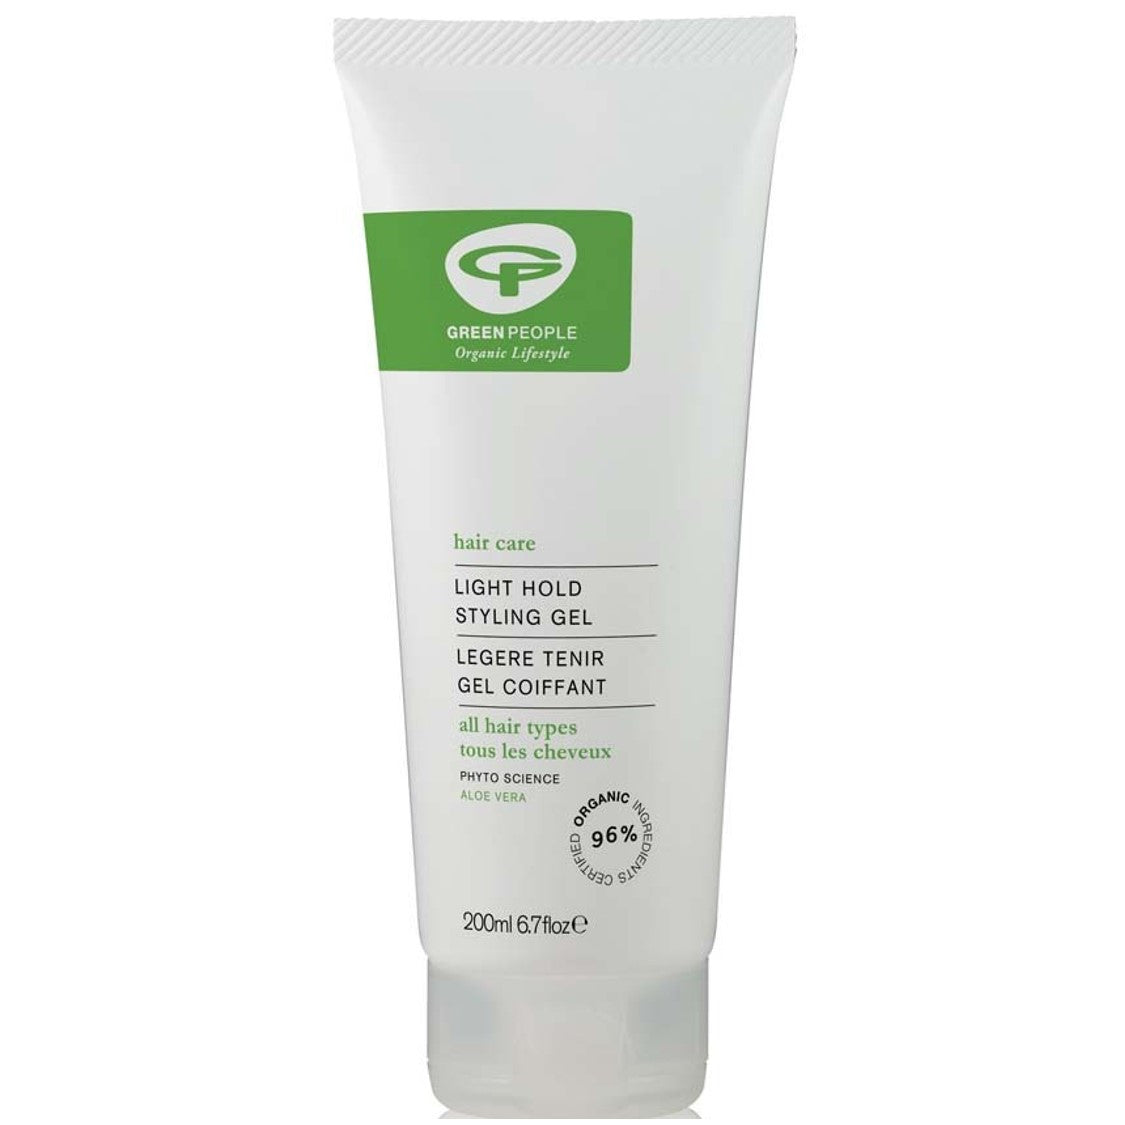 Green People Light Hold Aloe Vera Styling Gel, 200 ml.-NaturesWisdom